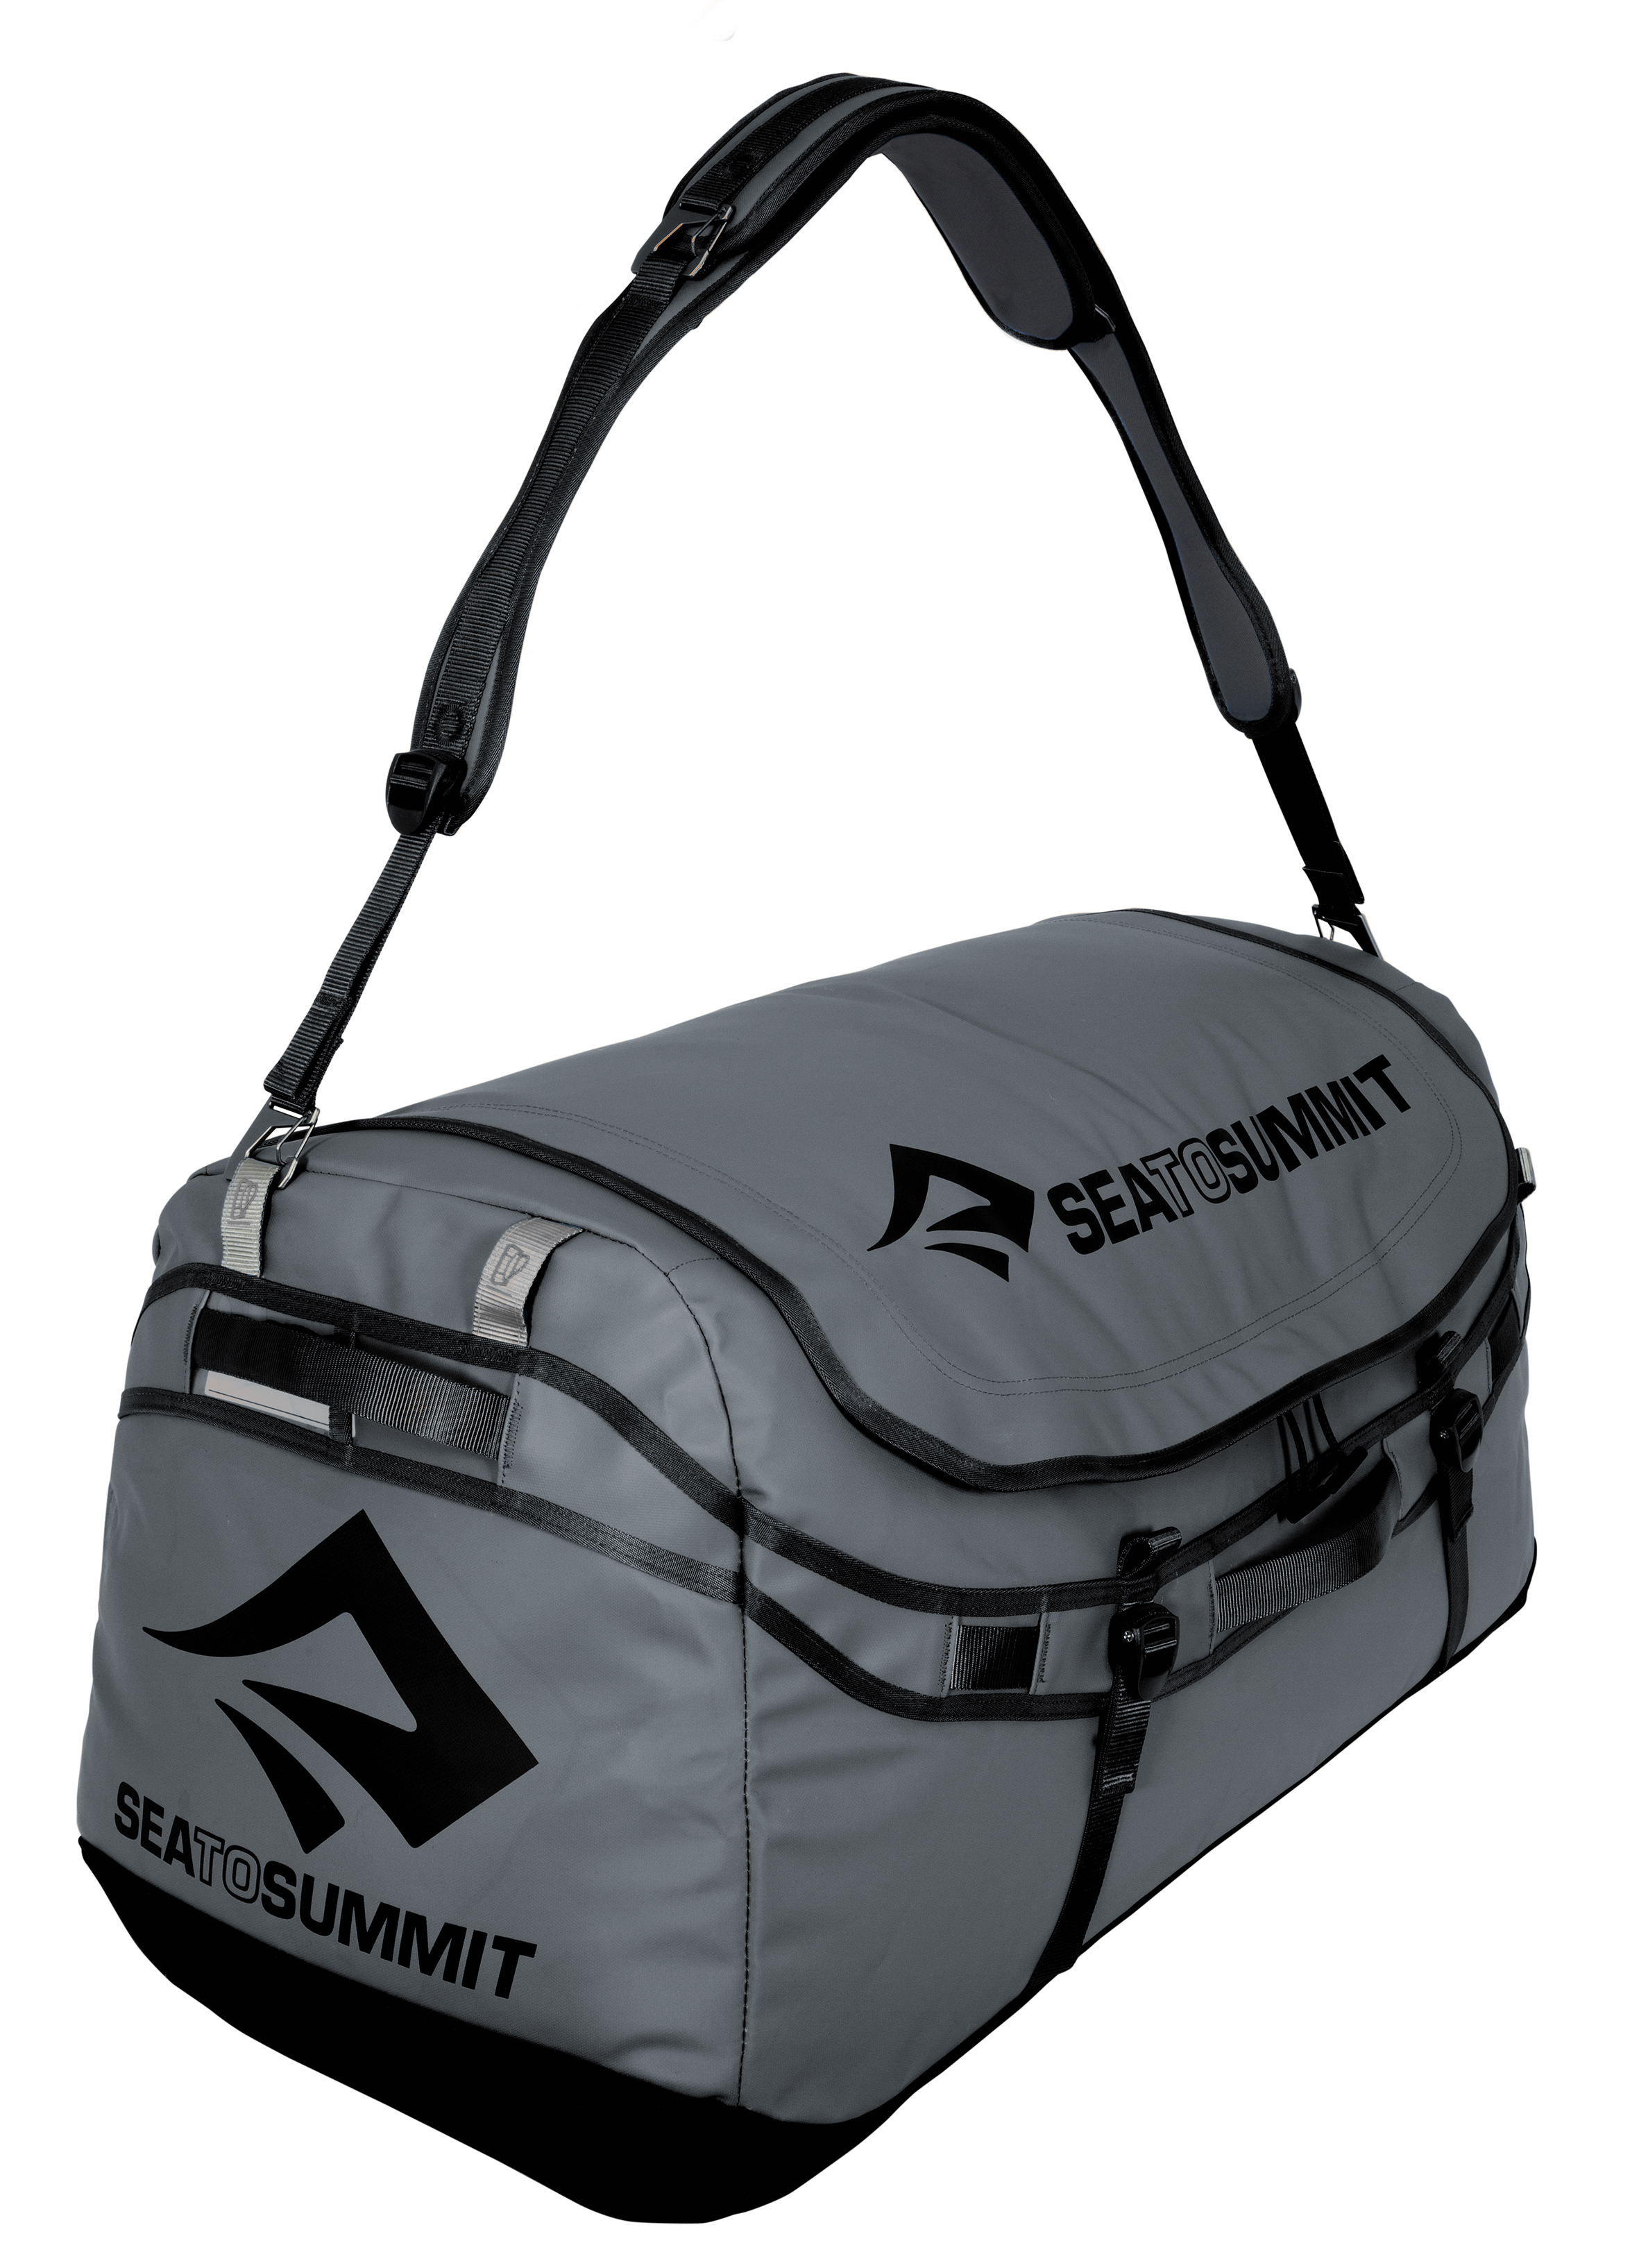 Сумка-баул Nomad Duffle 130L Sea To Summit — фото 4